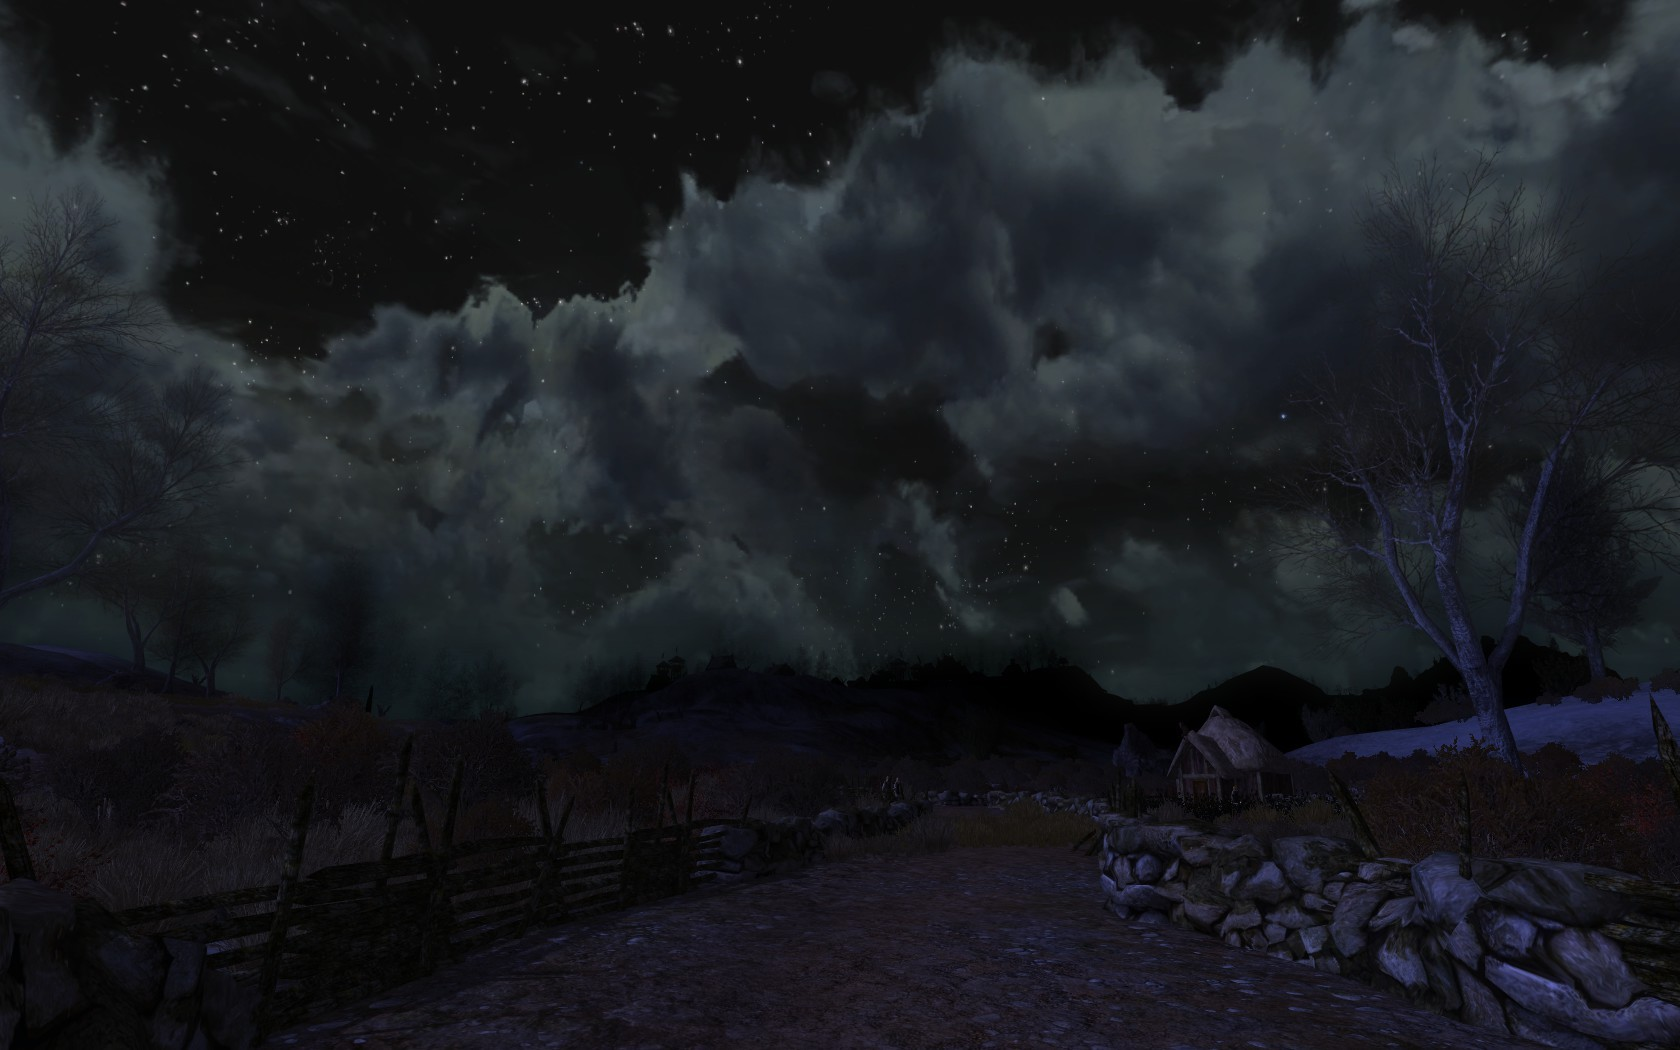 Lord of the Rings Online - Night in Rohan